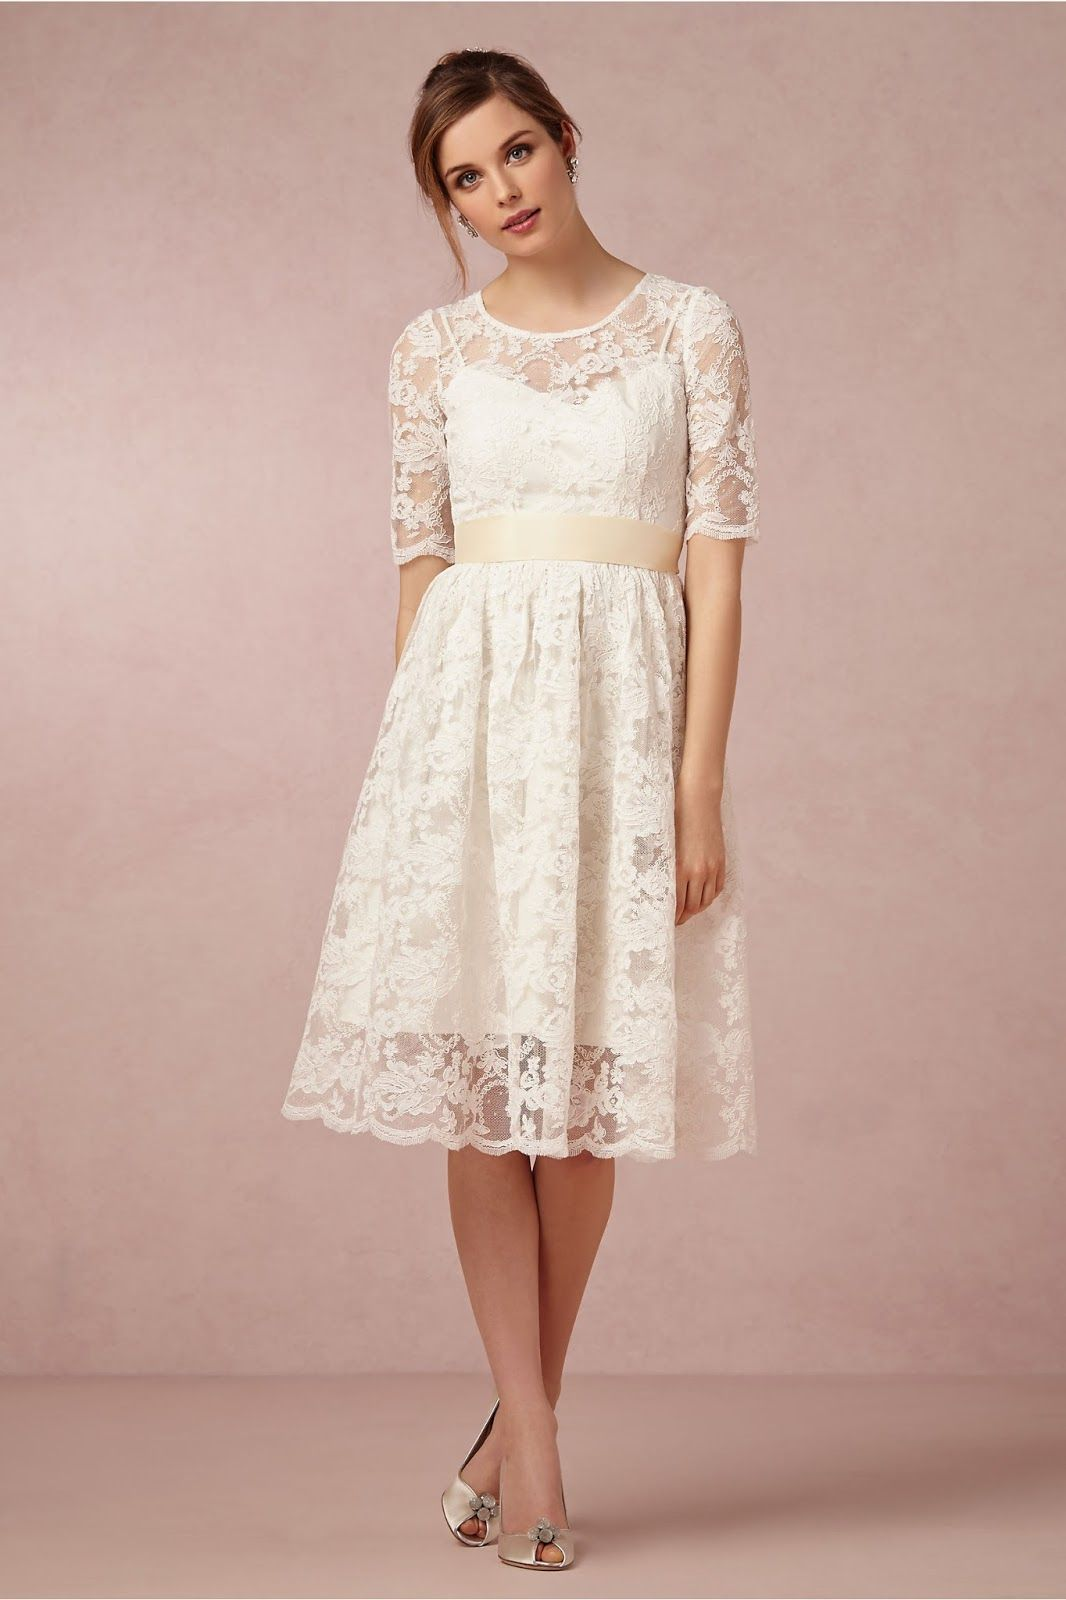 Petite Dresses for Wedding Guests - Wedding Dresses for the Mature ...